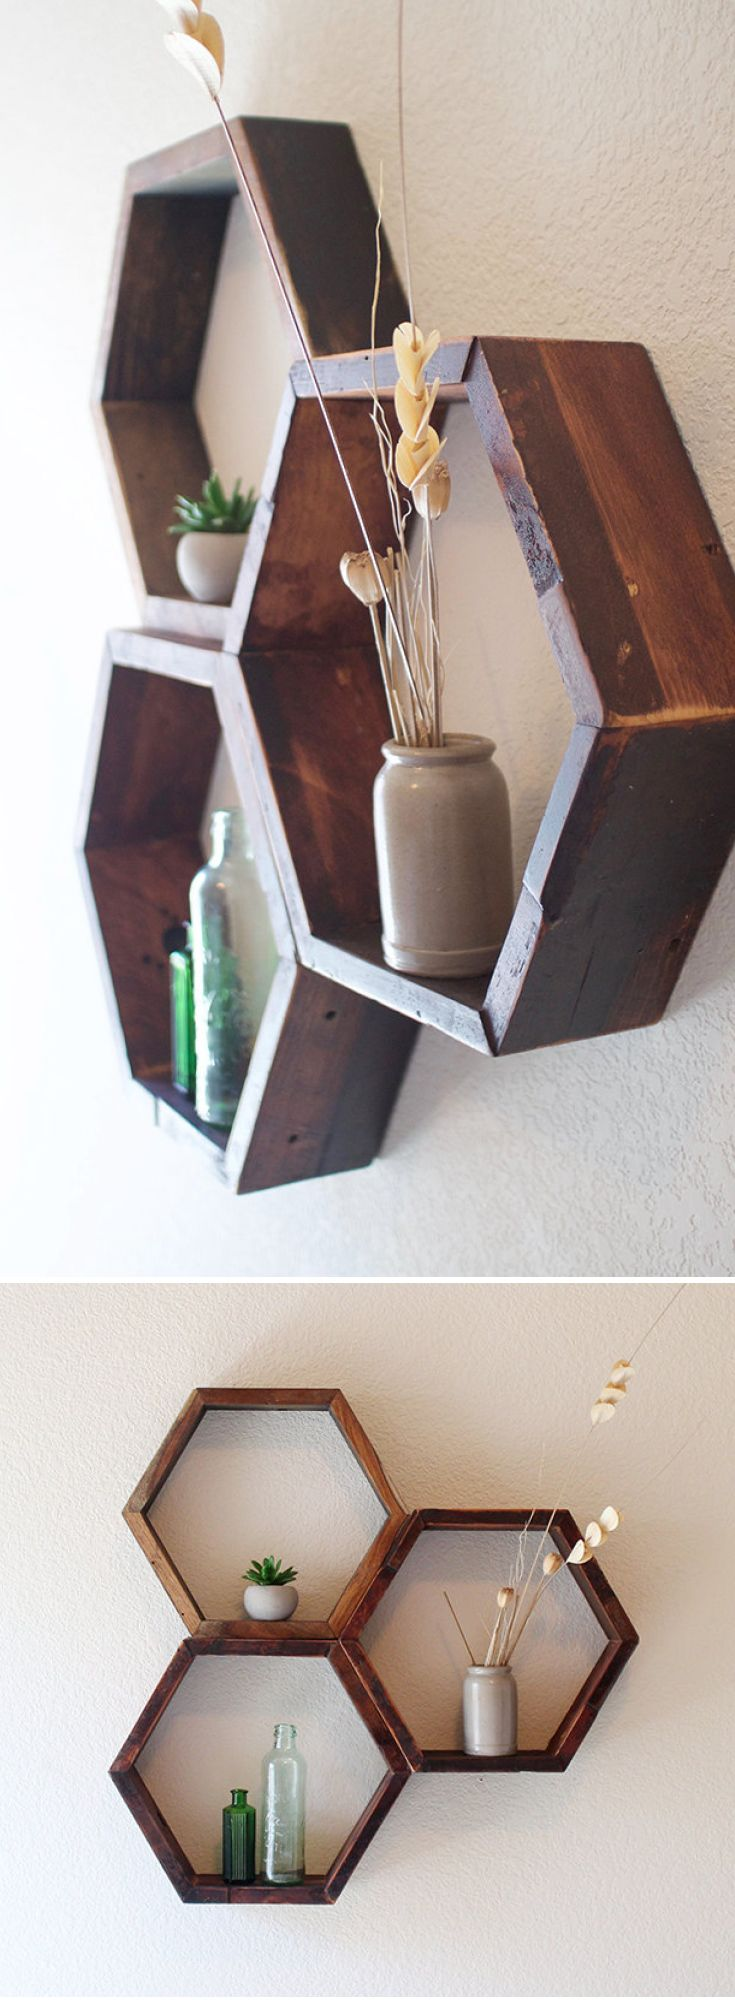 Set of 3 Wooden Hexagon Shelves These shelves were handmade with wood reclaimed from a vintage piano. Remnants of glue, lacquer finish, and antique stain remain on the wood imparting a charming, rustic look. These shelves work well alone or in a honeycomb grouping.